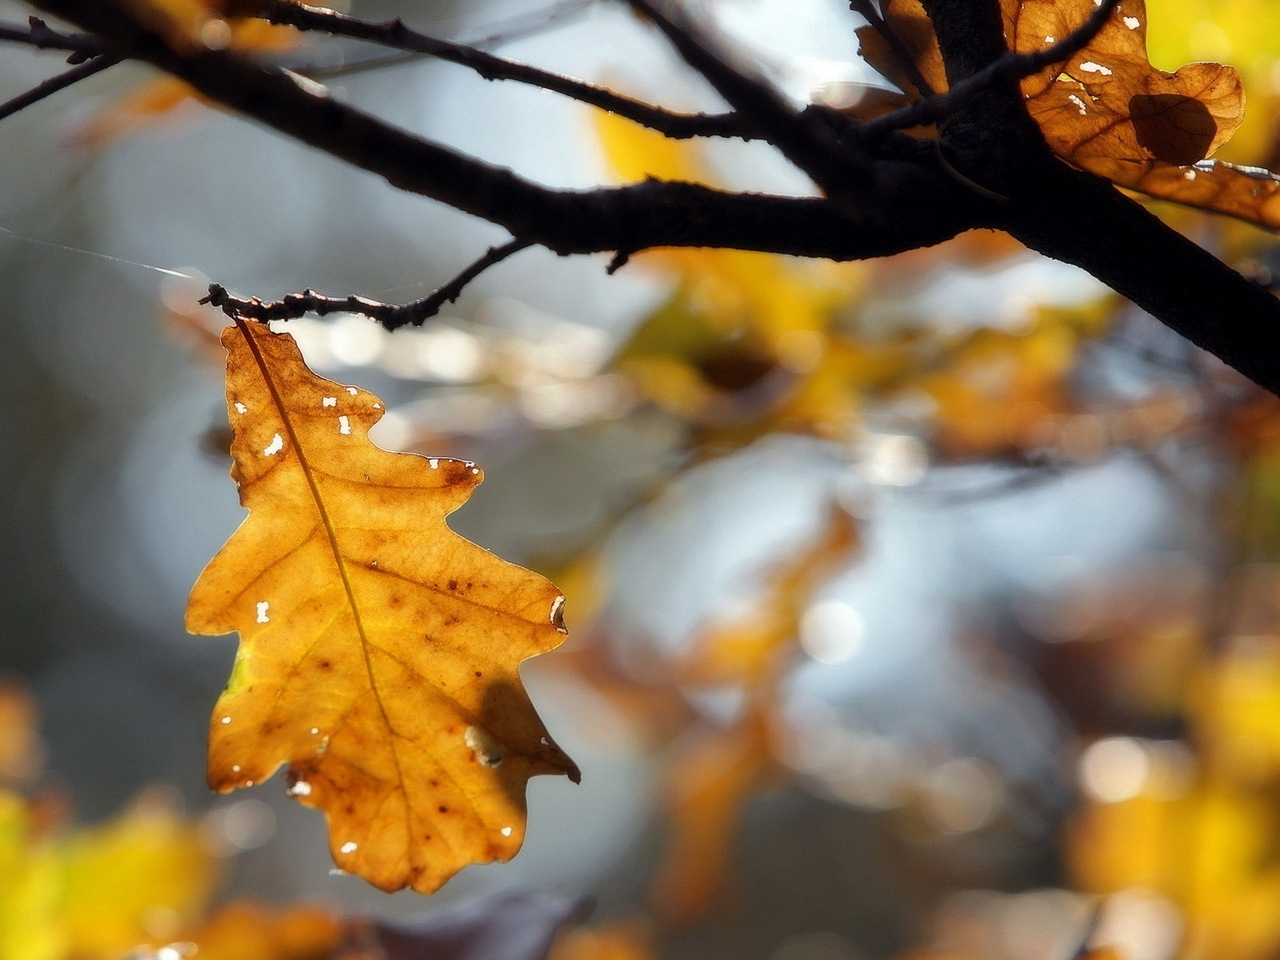 27546 download wallpaper Plants, Trees, Autumn, Leaves screensavers and pictures for free